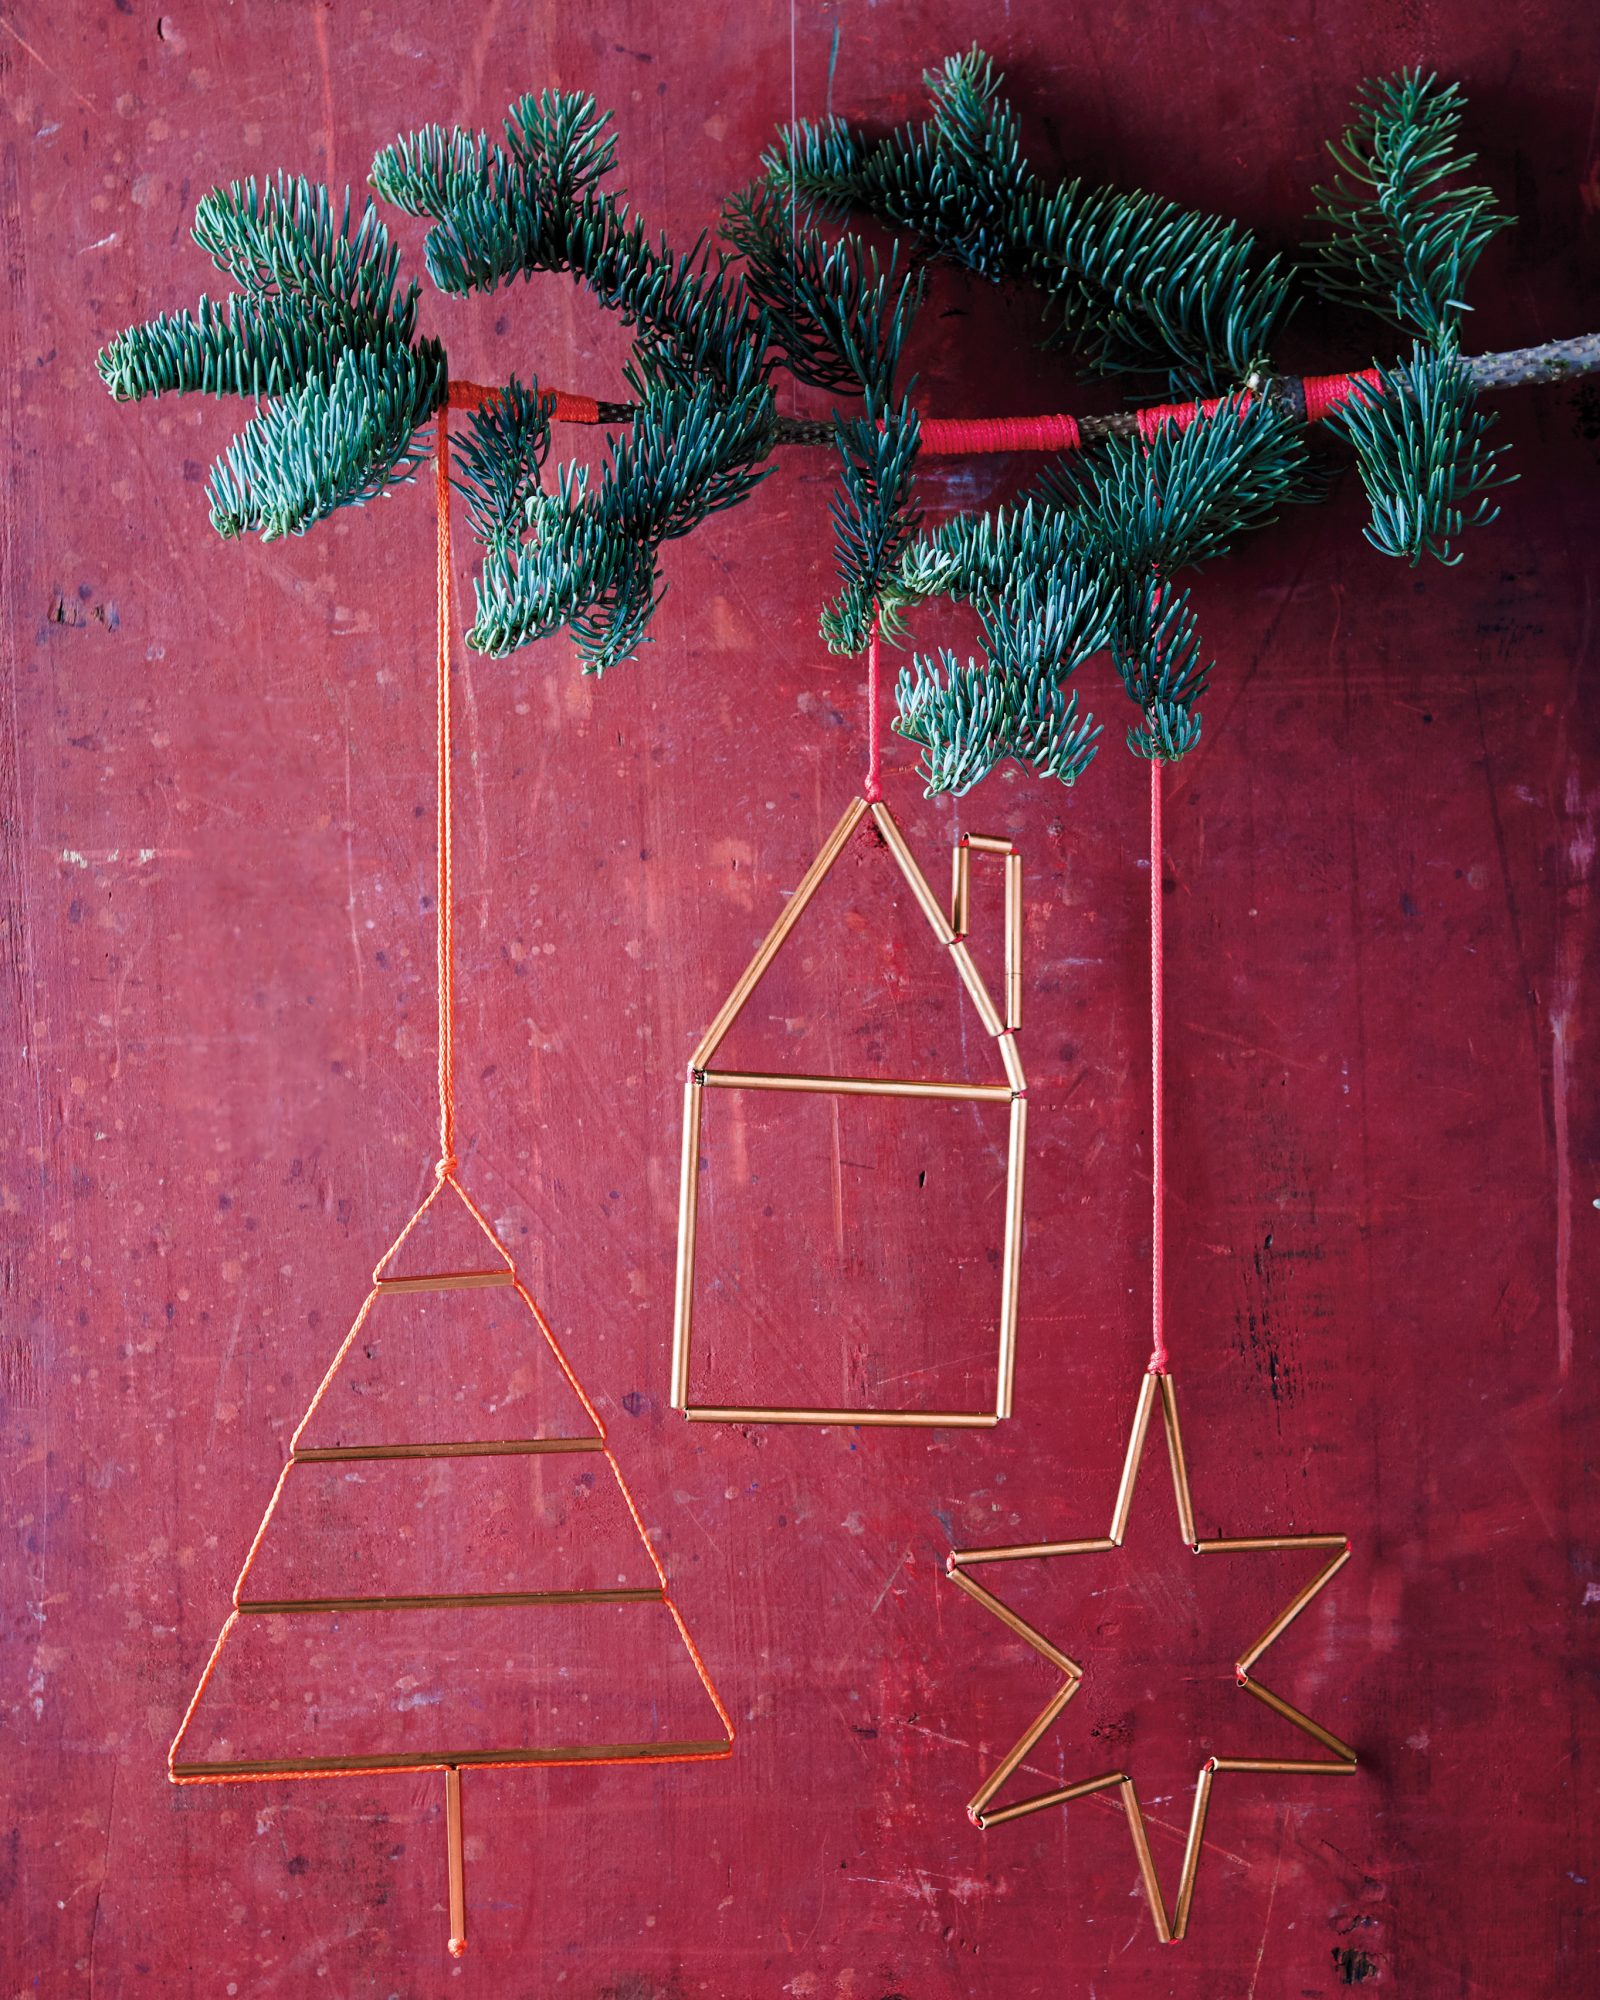 brass metal hardware Christmas ornaments